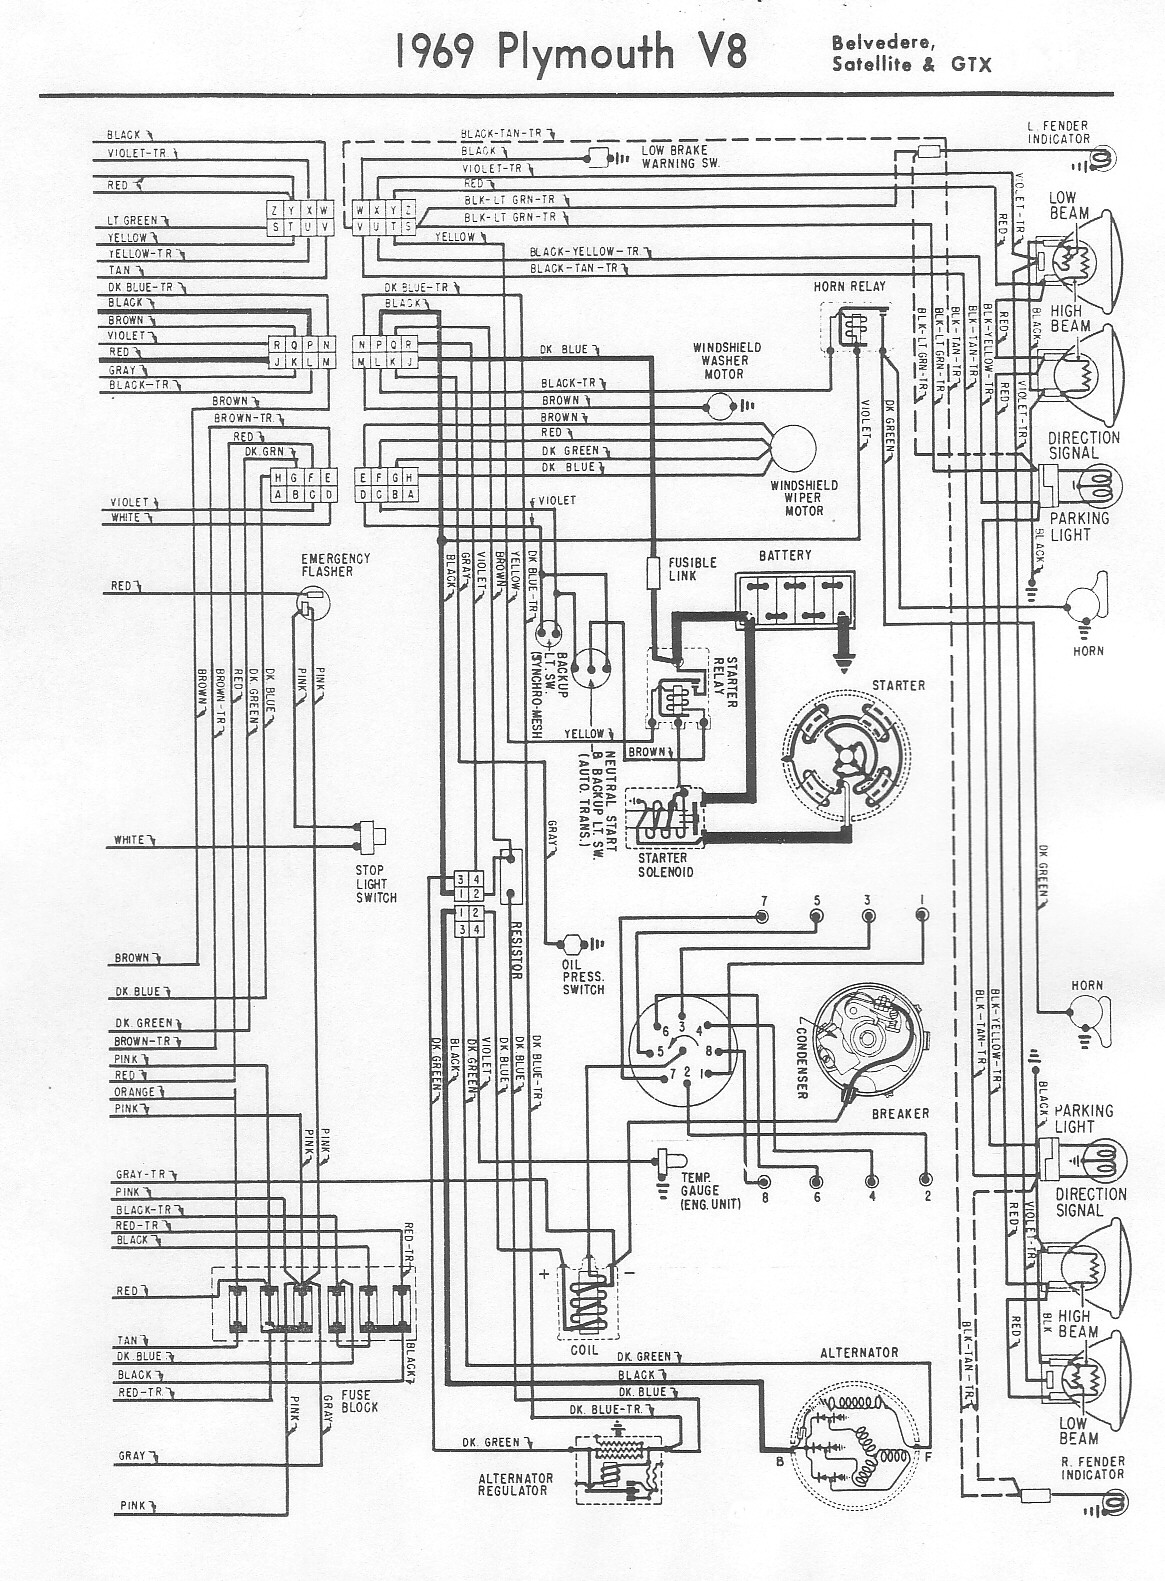 Pleasant 69 Charger Headlight Wiring Diagram Wiring Diagram Data Schema Wiring Cloud Overrenstrafr09Org